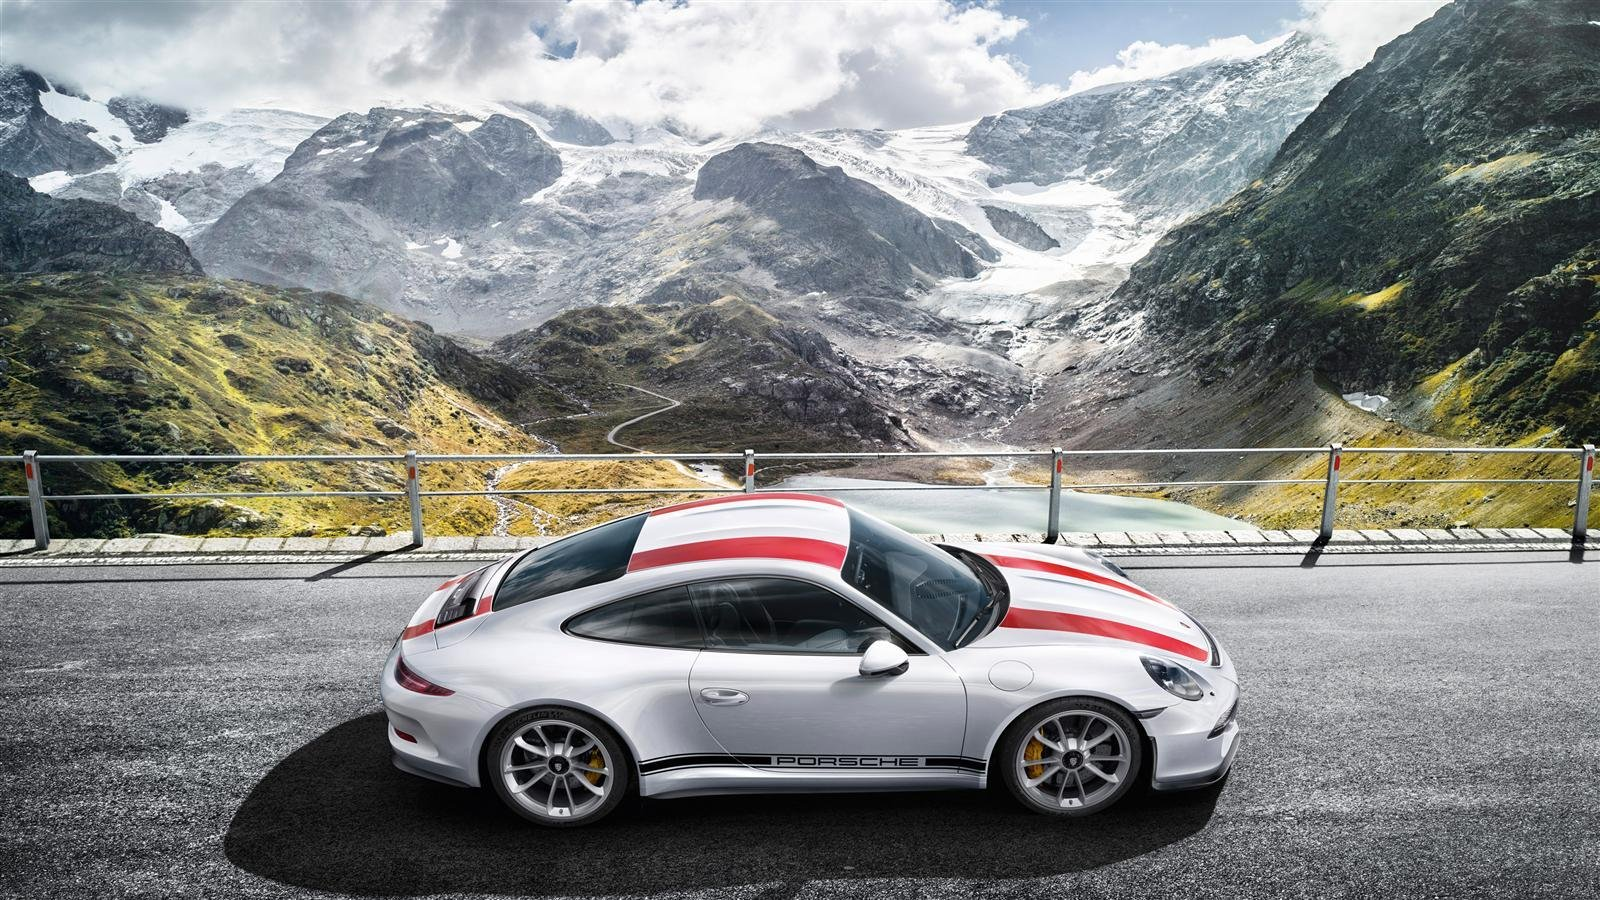 2017 porsche 911 r picture 667599 car review top speed. Black Bedroom Furniture Sets. Home Design Ideas